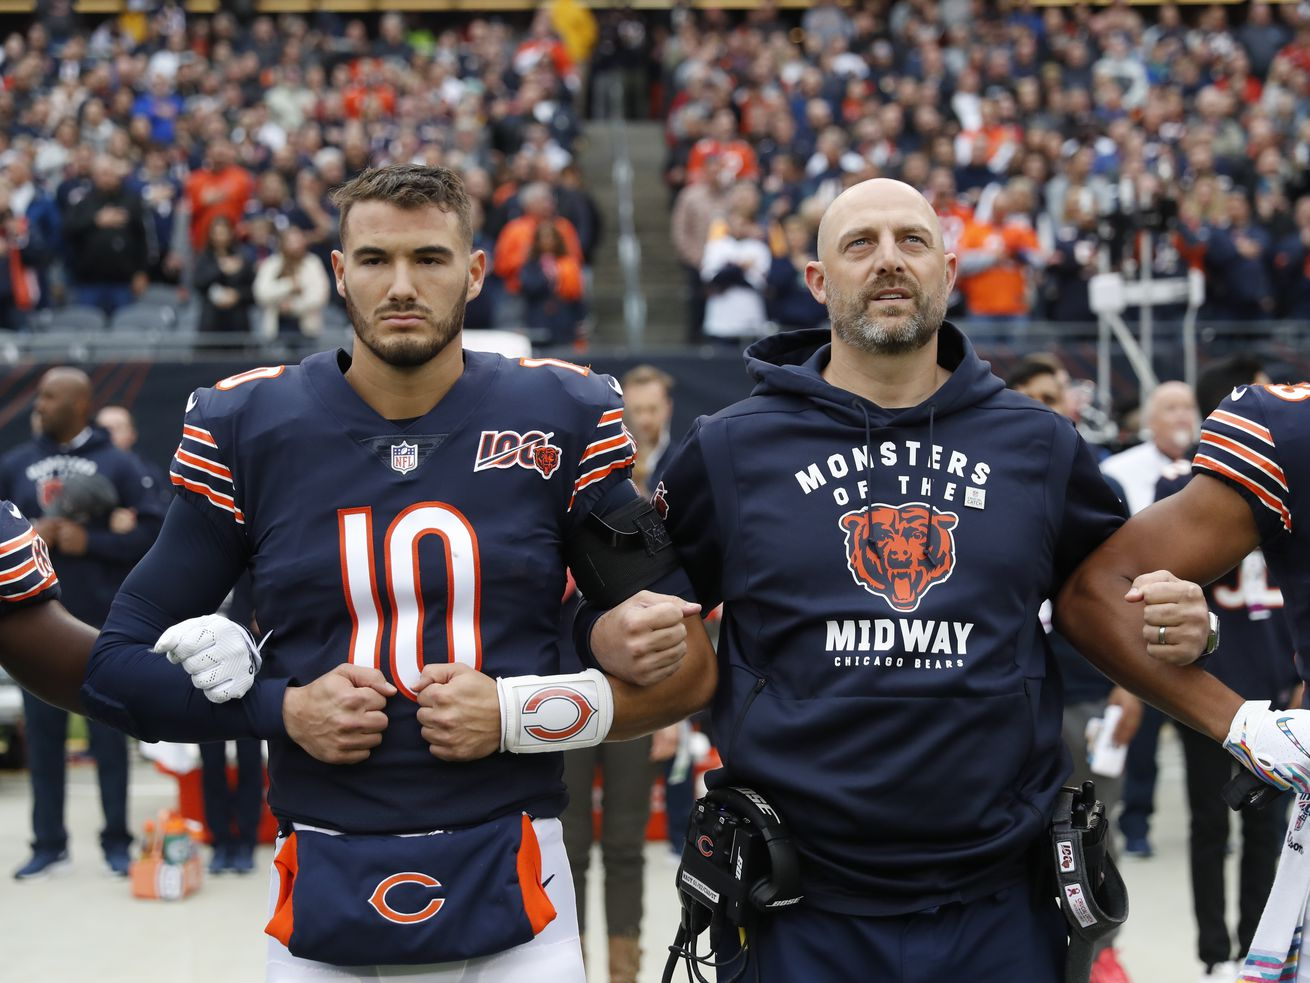 Bears quarterback Mitch Trubisky and coach Matt Nagy link arms during the national anthem before the Saints game.